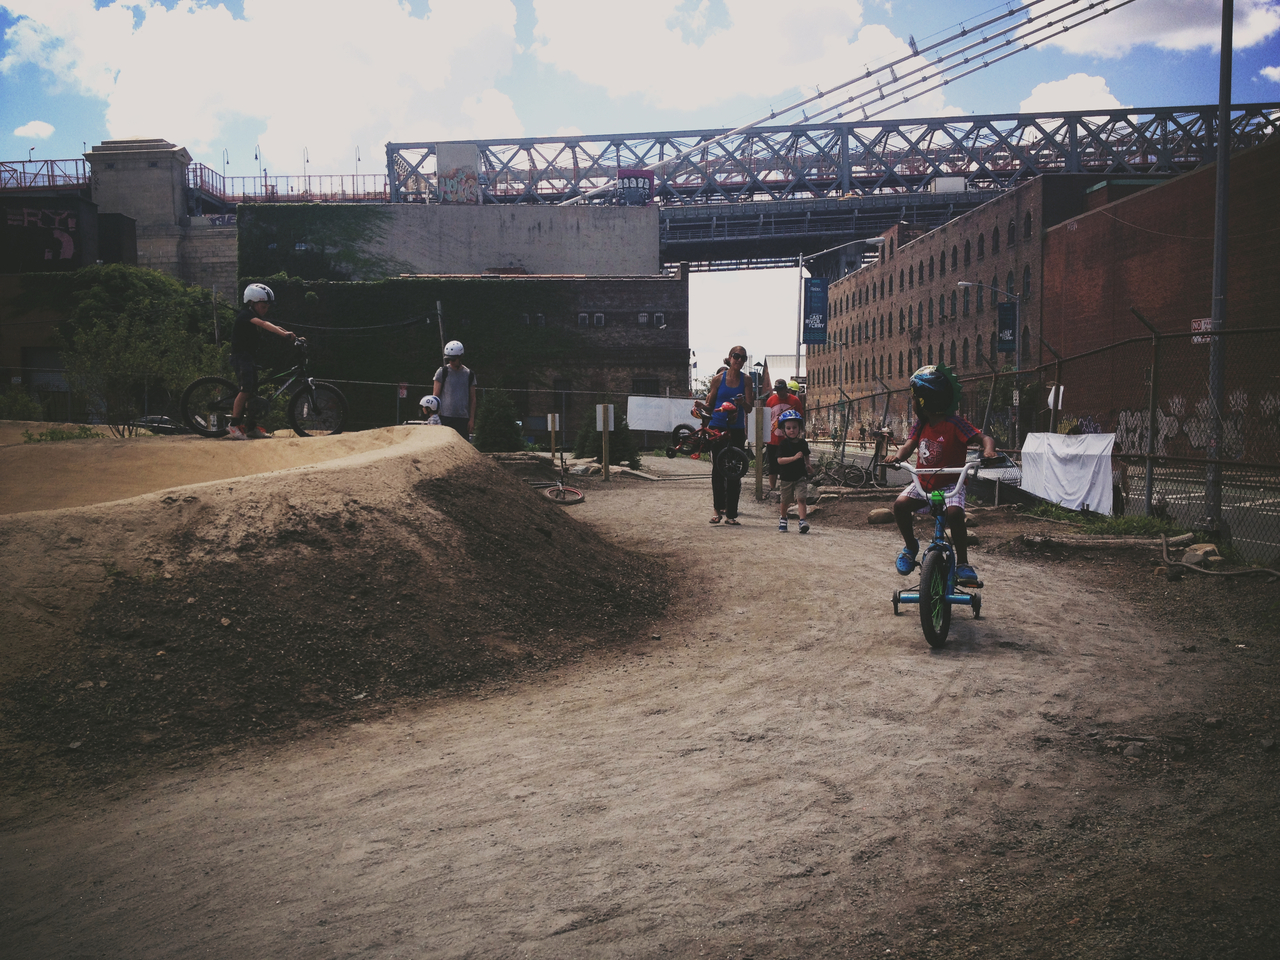 The Future the BMXer - #pepper #bikers #bikes #bmx #dirt #peppersearching #bikeculture @KitCamApp #kitcam #vignette #brooklyn